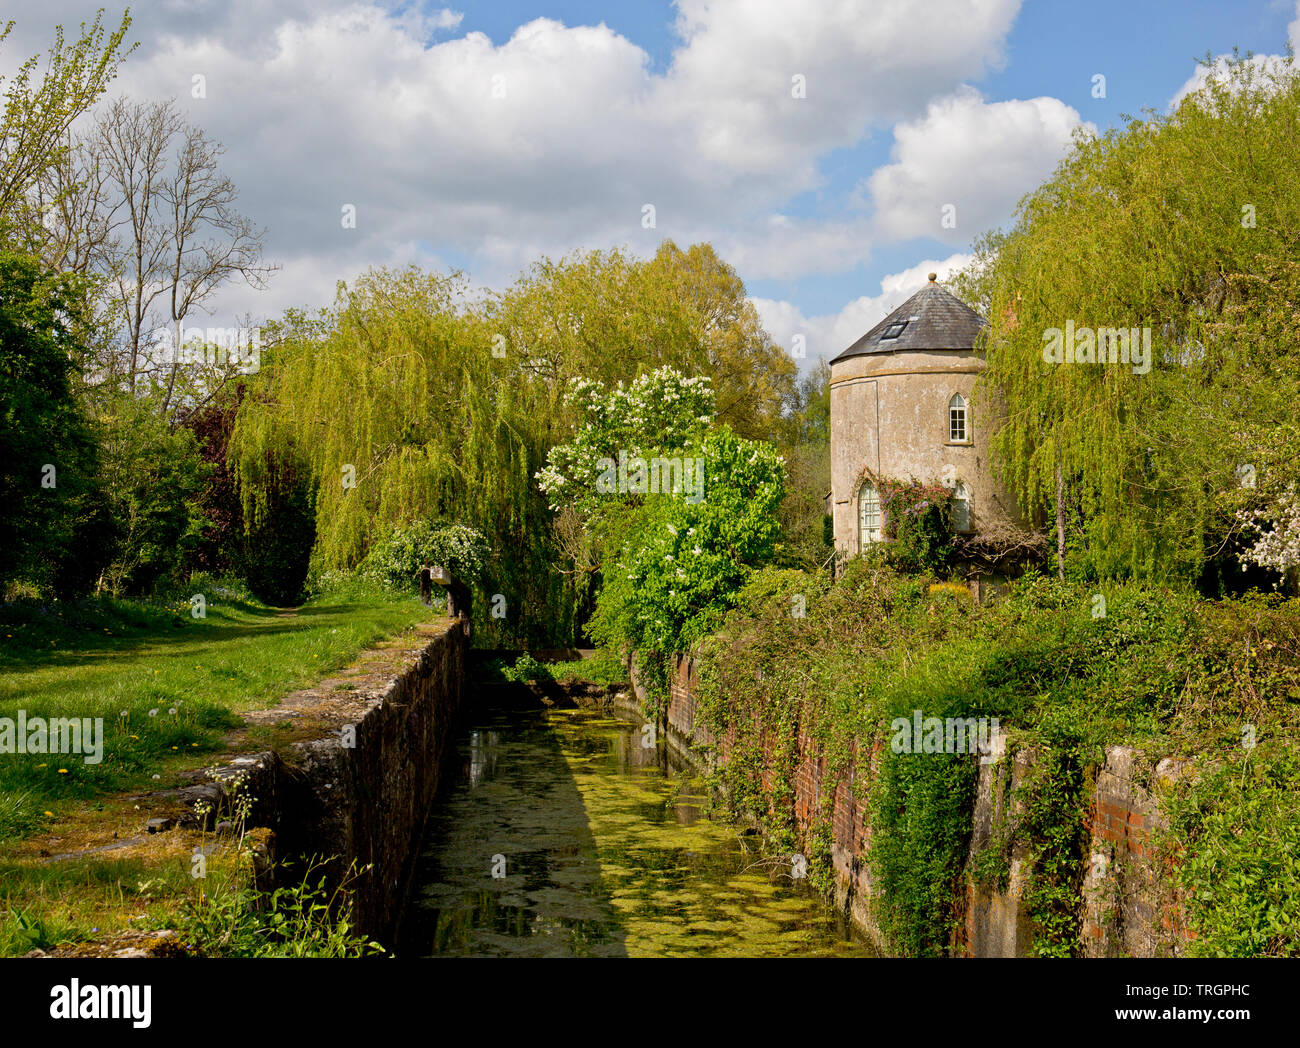 Cerney Wick Lock, Thames and Severn canal - Stock Image